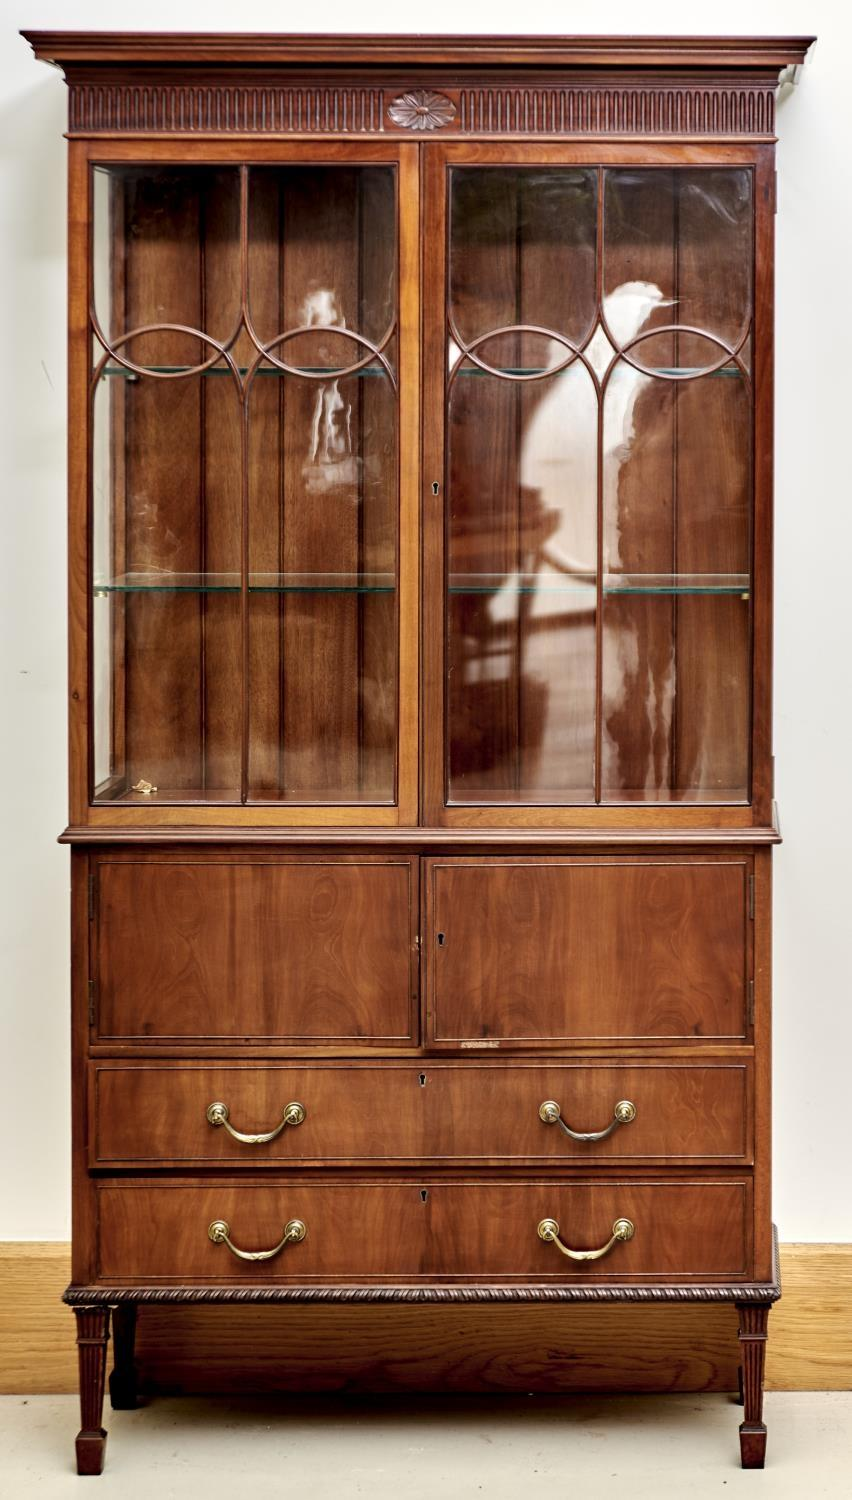 AN EDWARDIAN MAHOGANY DISPLAY CABINET IN GEORGE III STYLE, C1905, FLARED CORNICE ABOVE A FLUTED